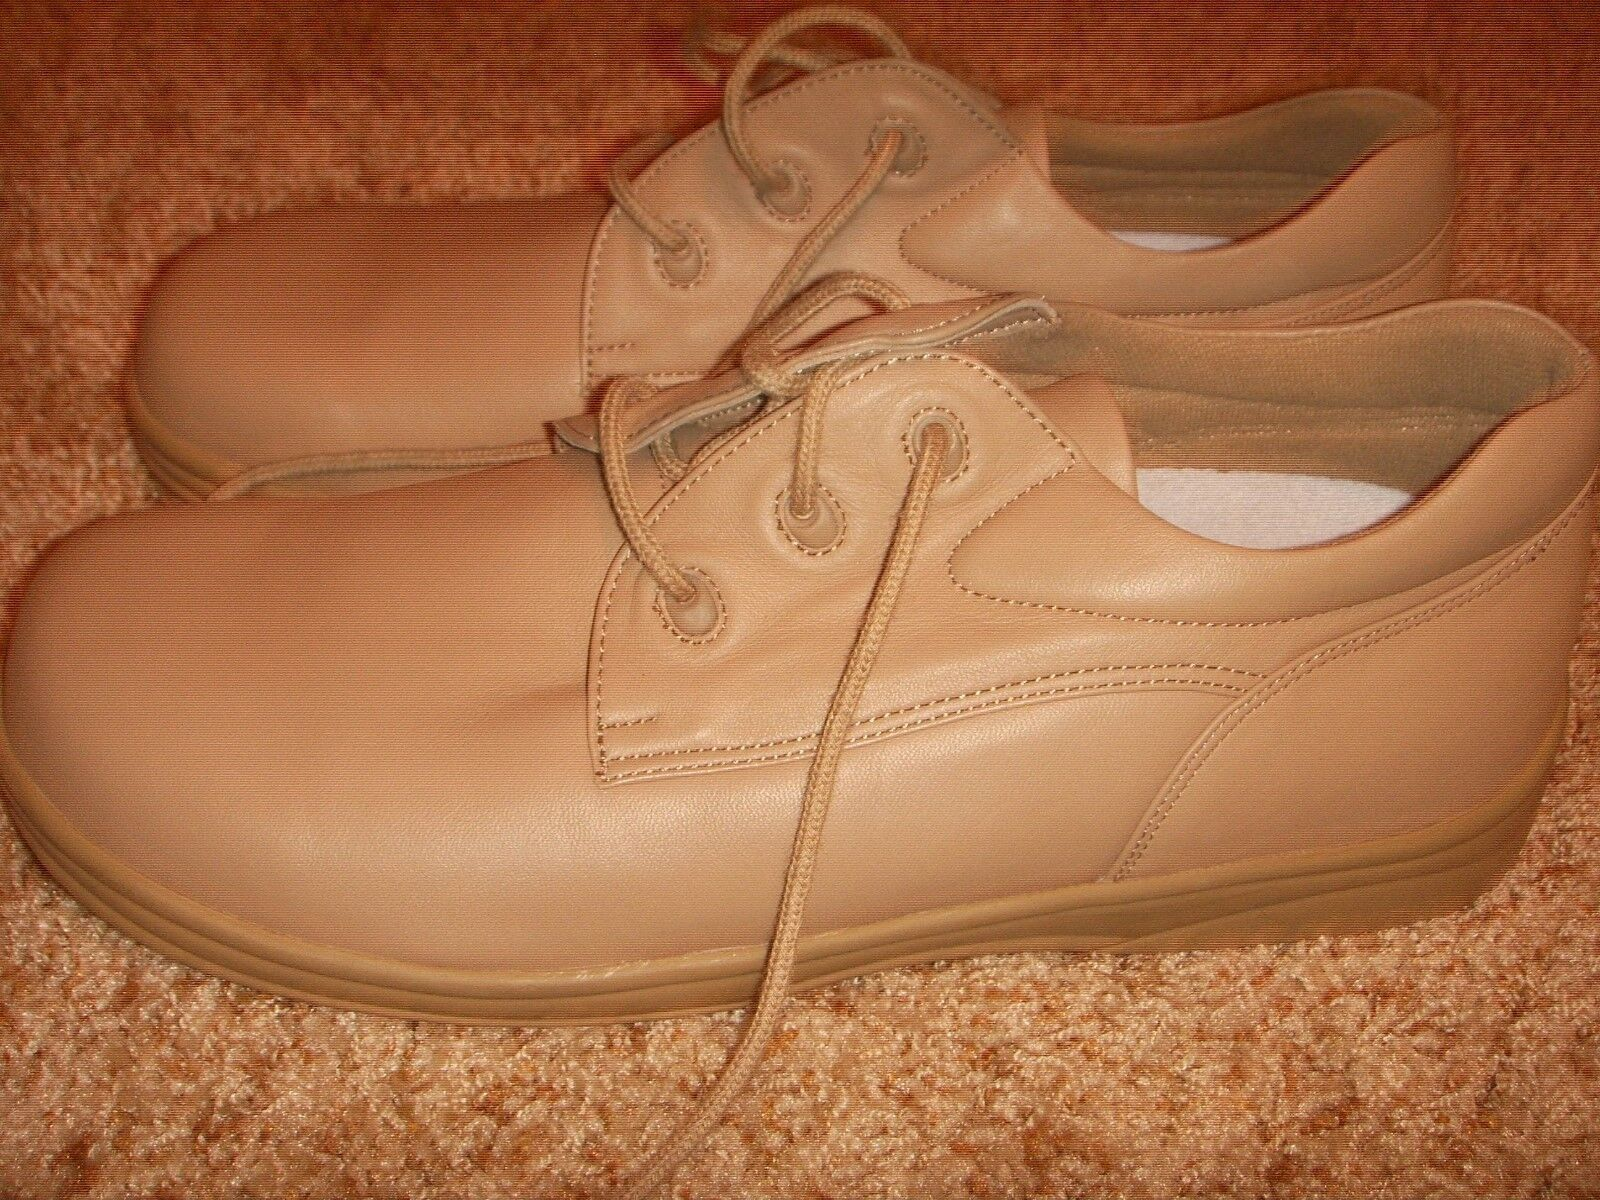 APEX Y540W comfort walking shoes taupe Womens Size 12M